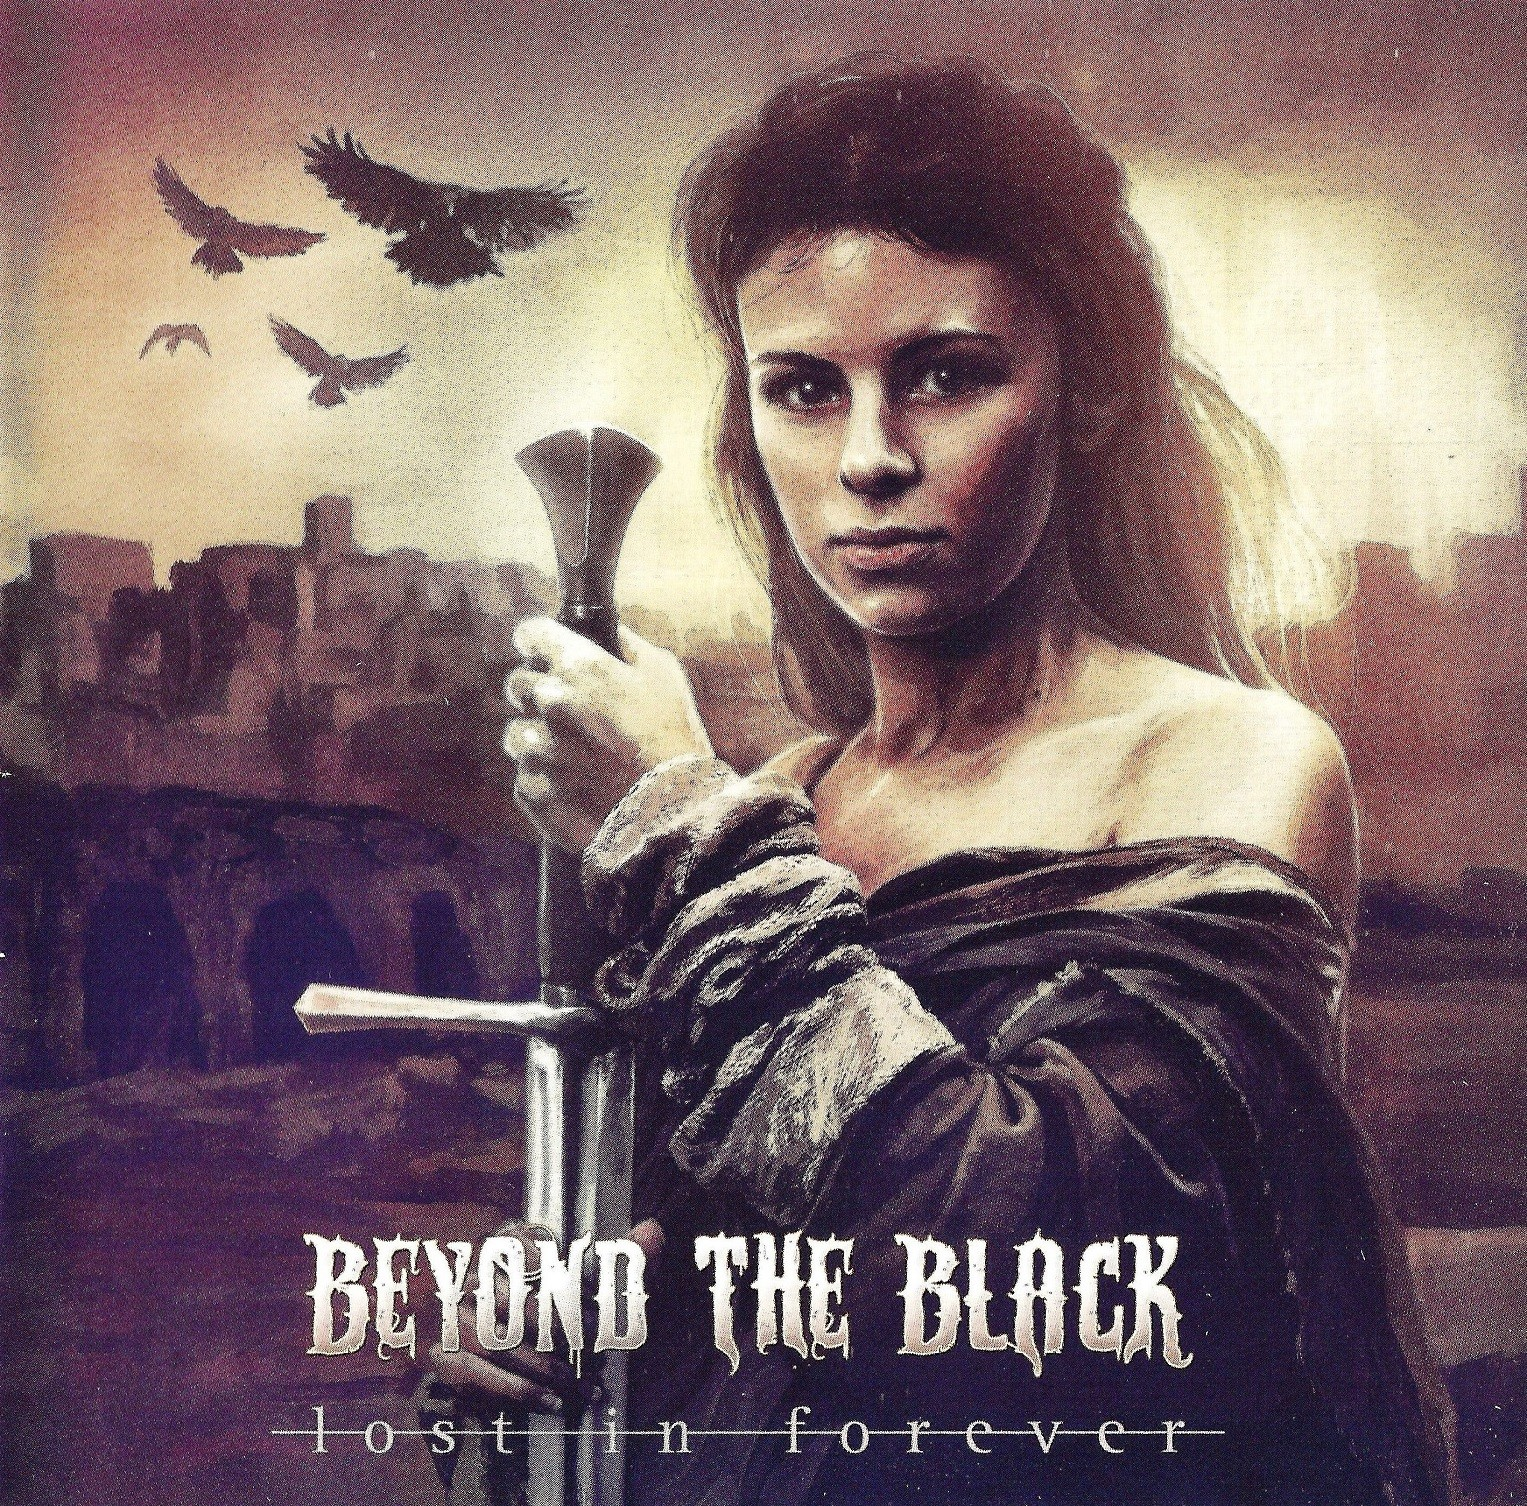 Beyond the Black - Lost in Forever (2017 German Tour Edition)